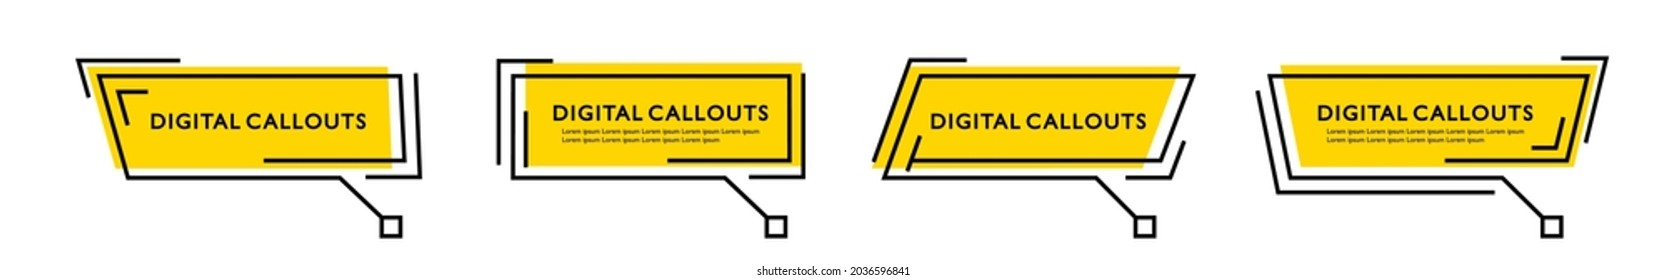 Technology digital callouts titles template. Callouts text boxes infographic template. Quote in digital frames on yellow background. Vector illustration.